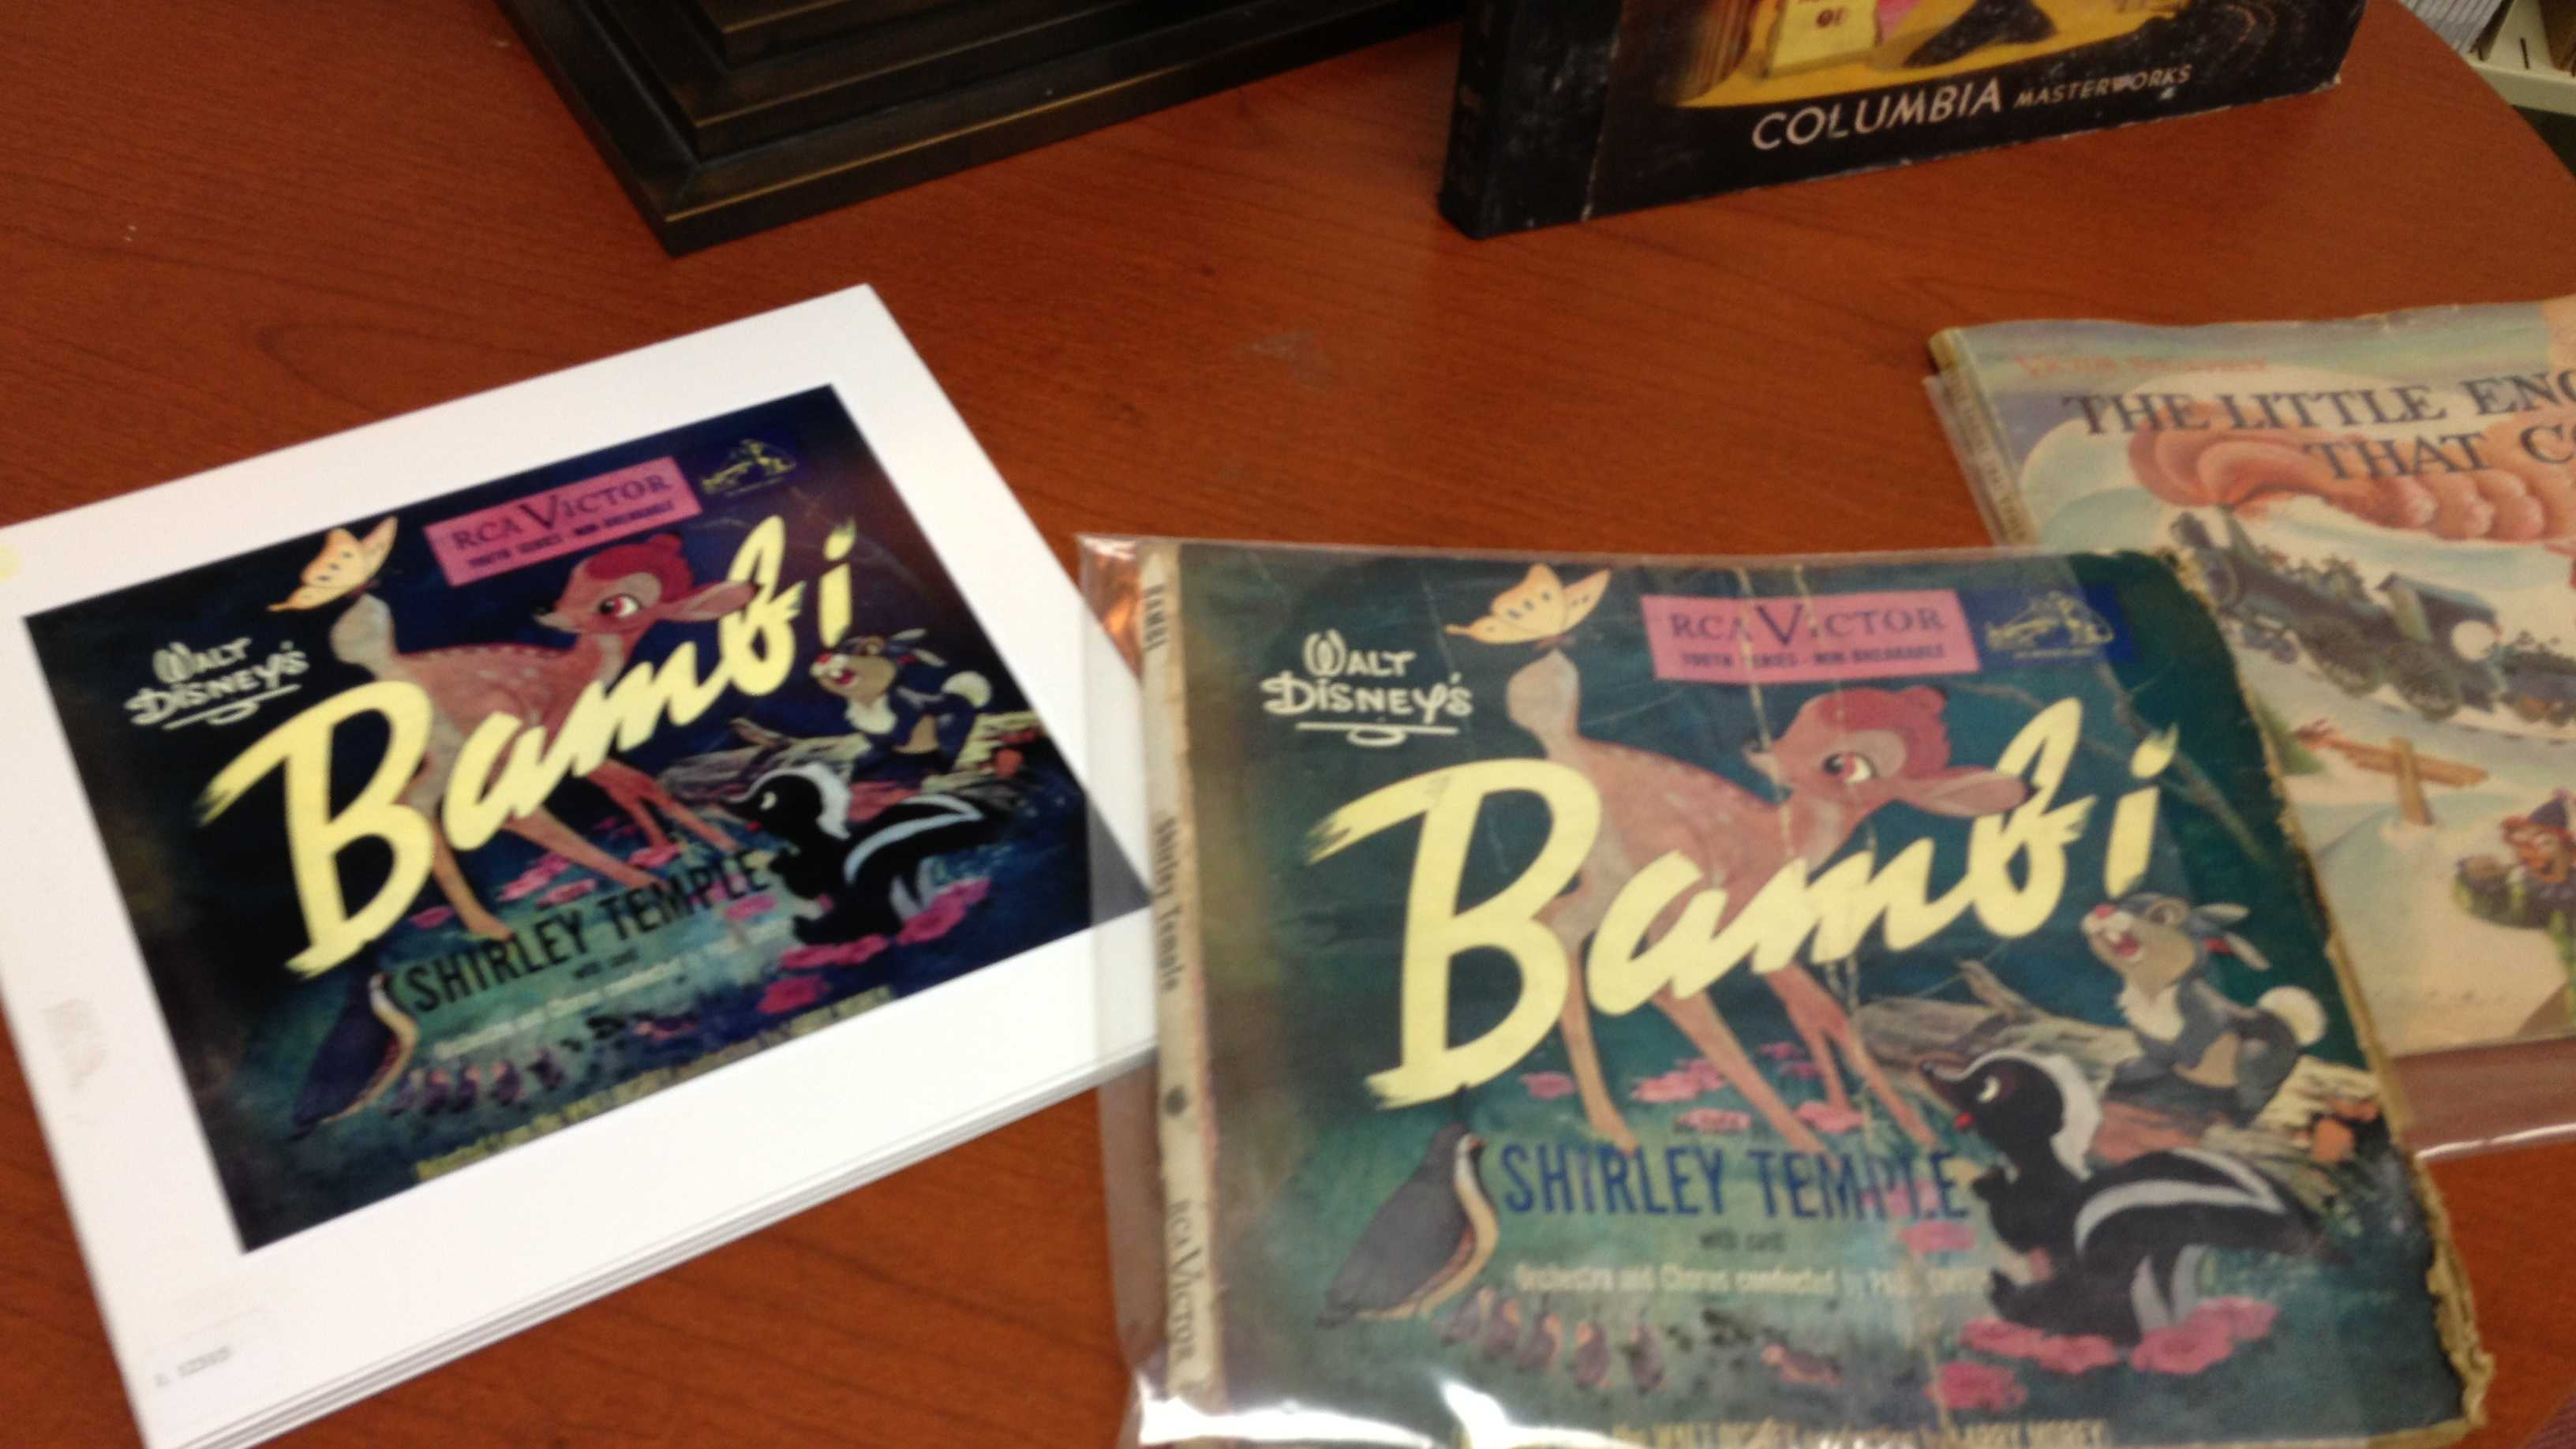 This Bambi record is one of hundreds of children's records that Florida Atlantic University's Recorded Sound Archives is working to restore.